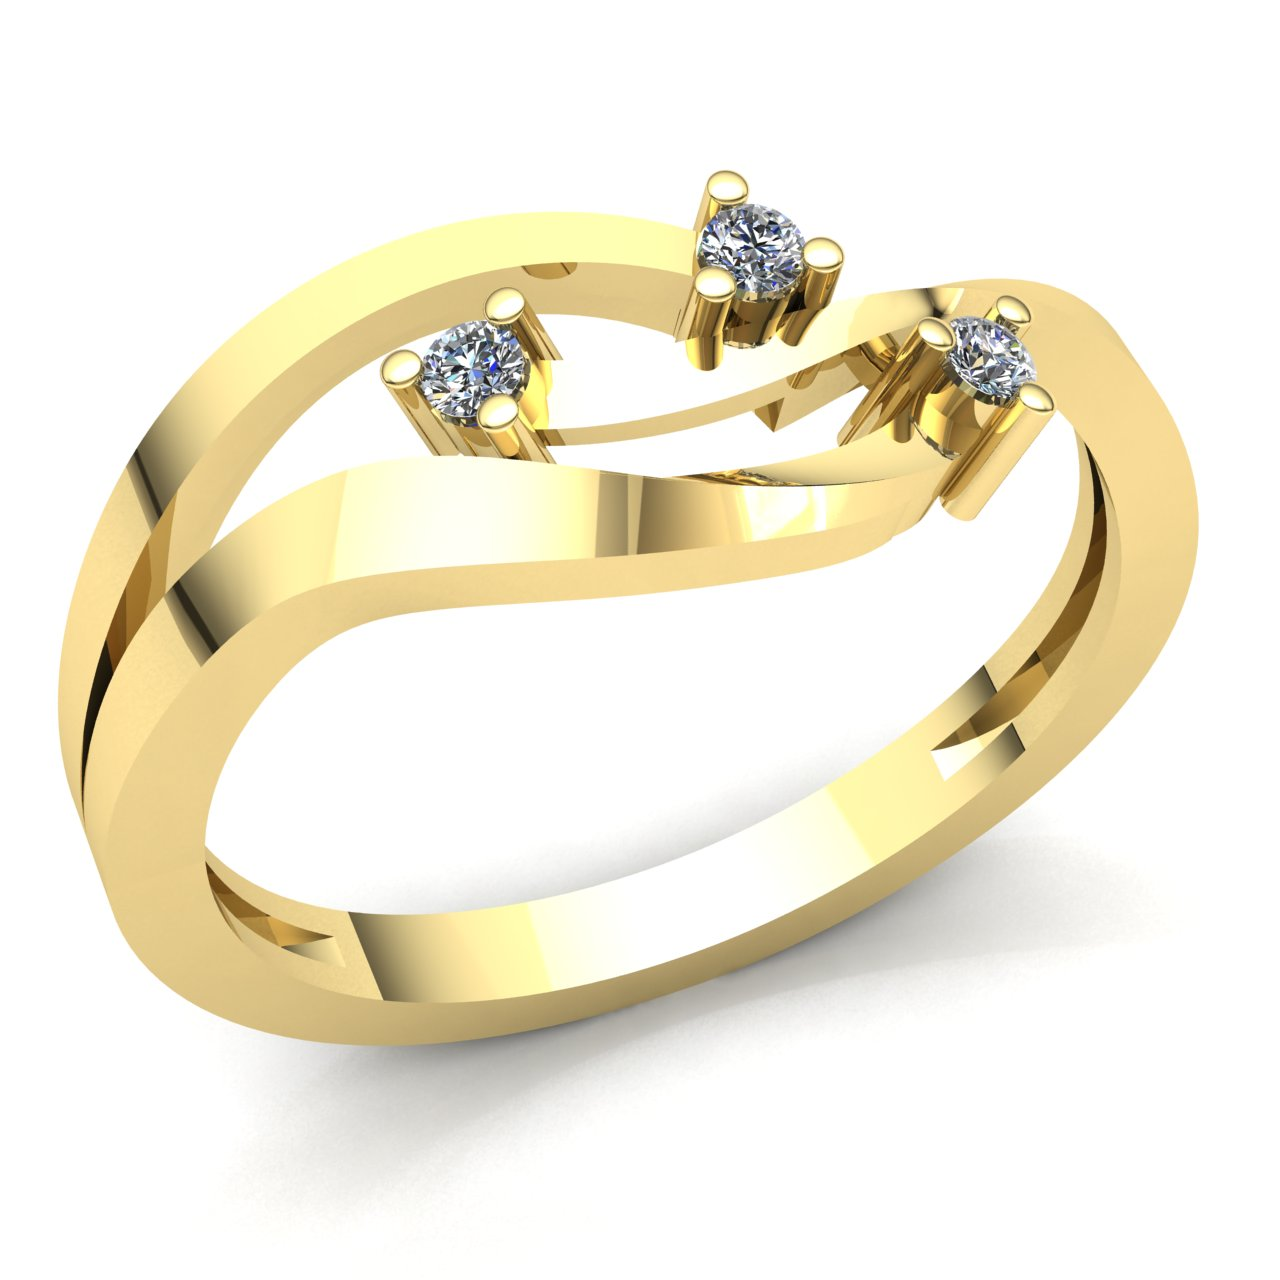 present and trends rings beautiful engagement past wedding redesign future the of ring